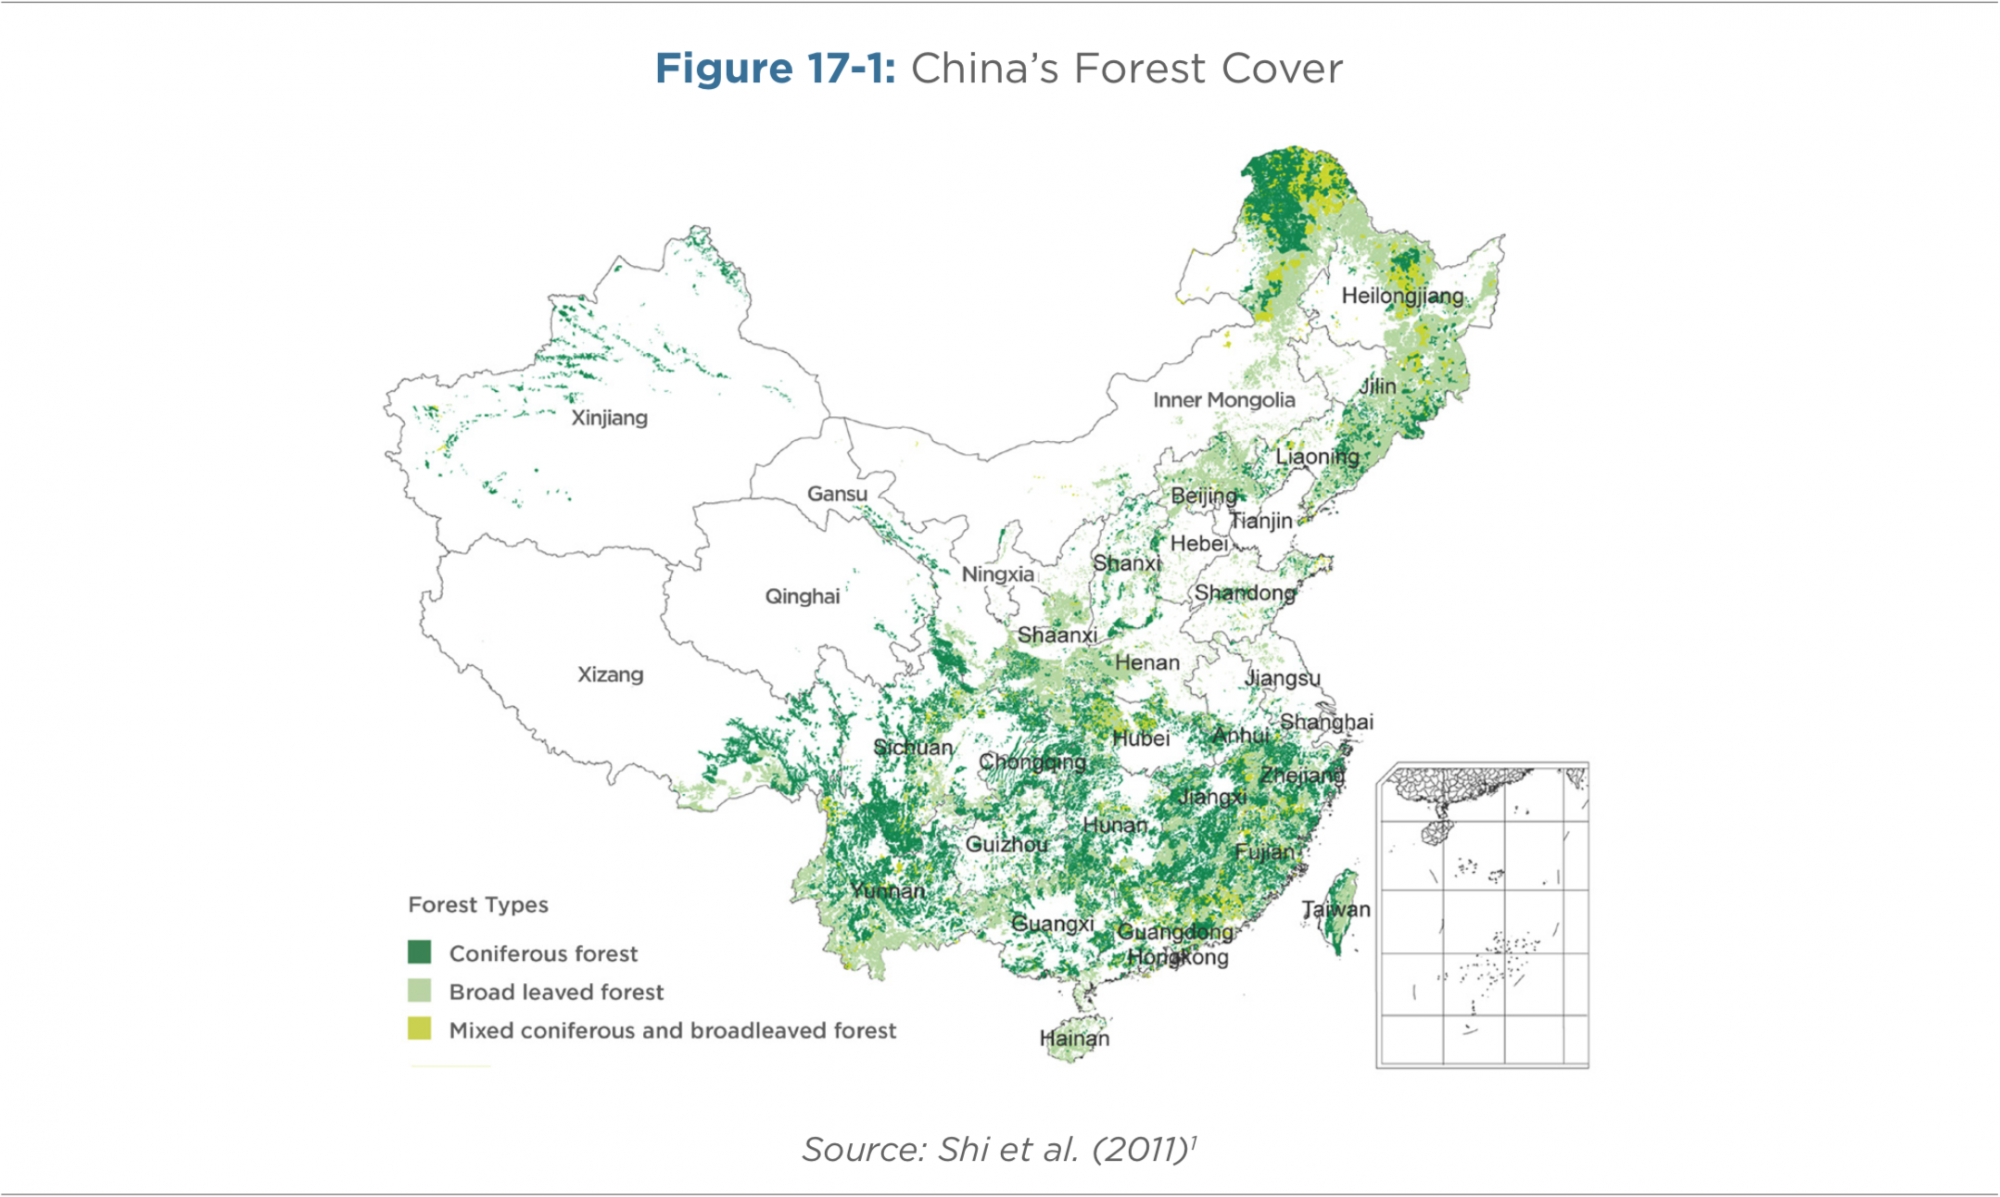 Figure 17-1: China's Forest Cover